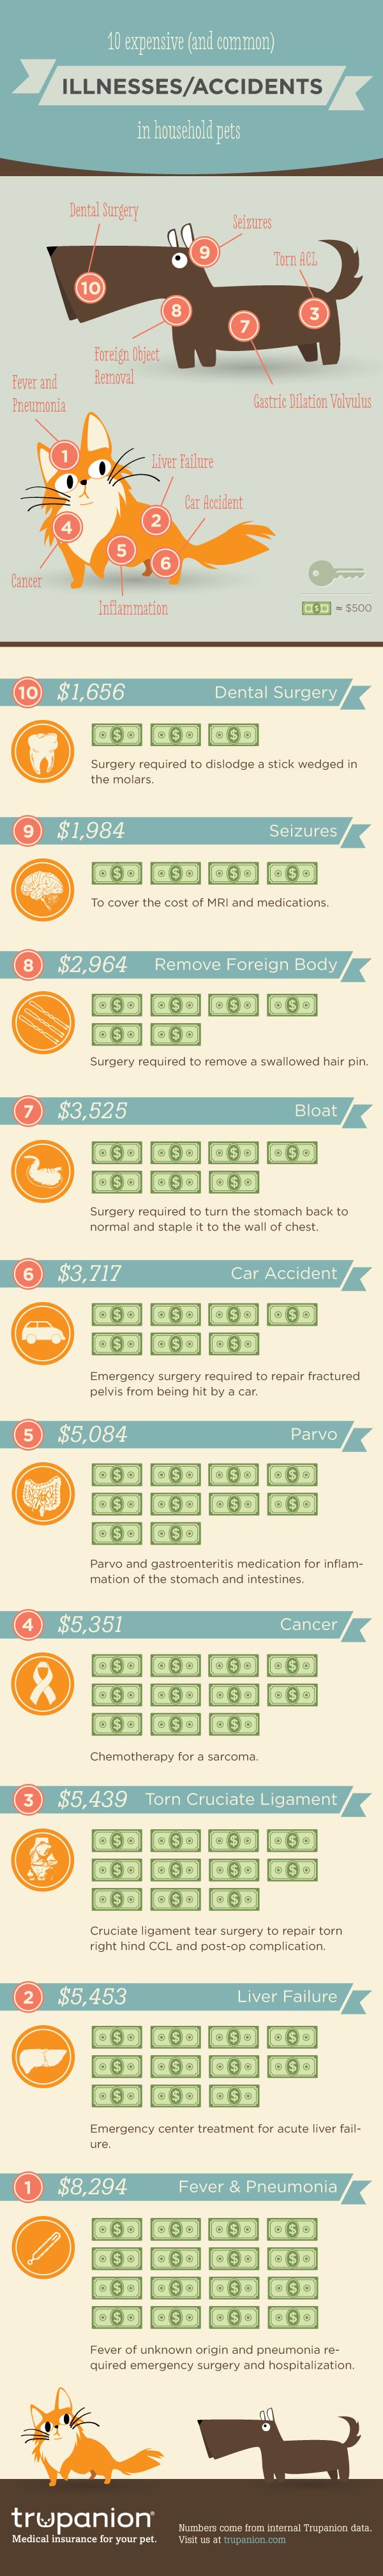 10 Expensive (and common) Illnesses/Accidents in Household Pets